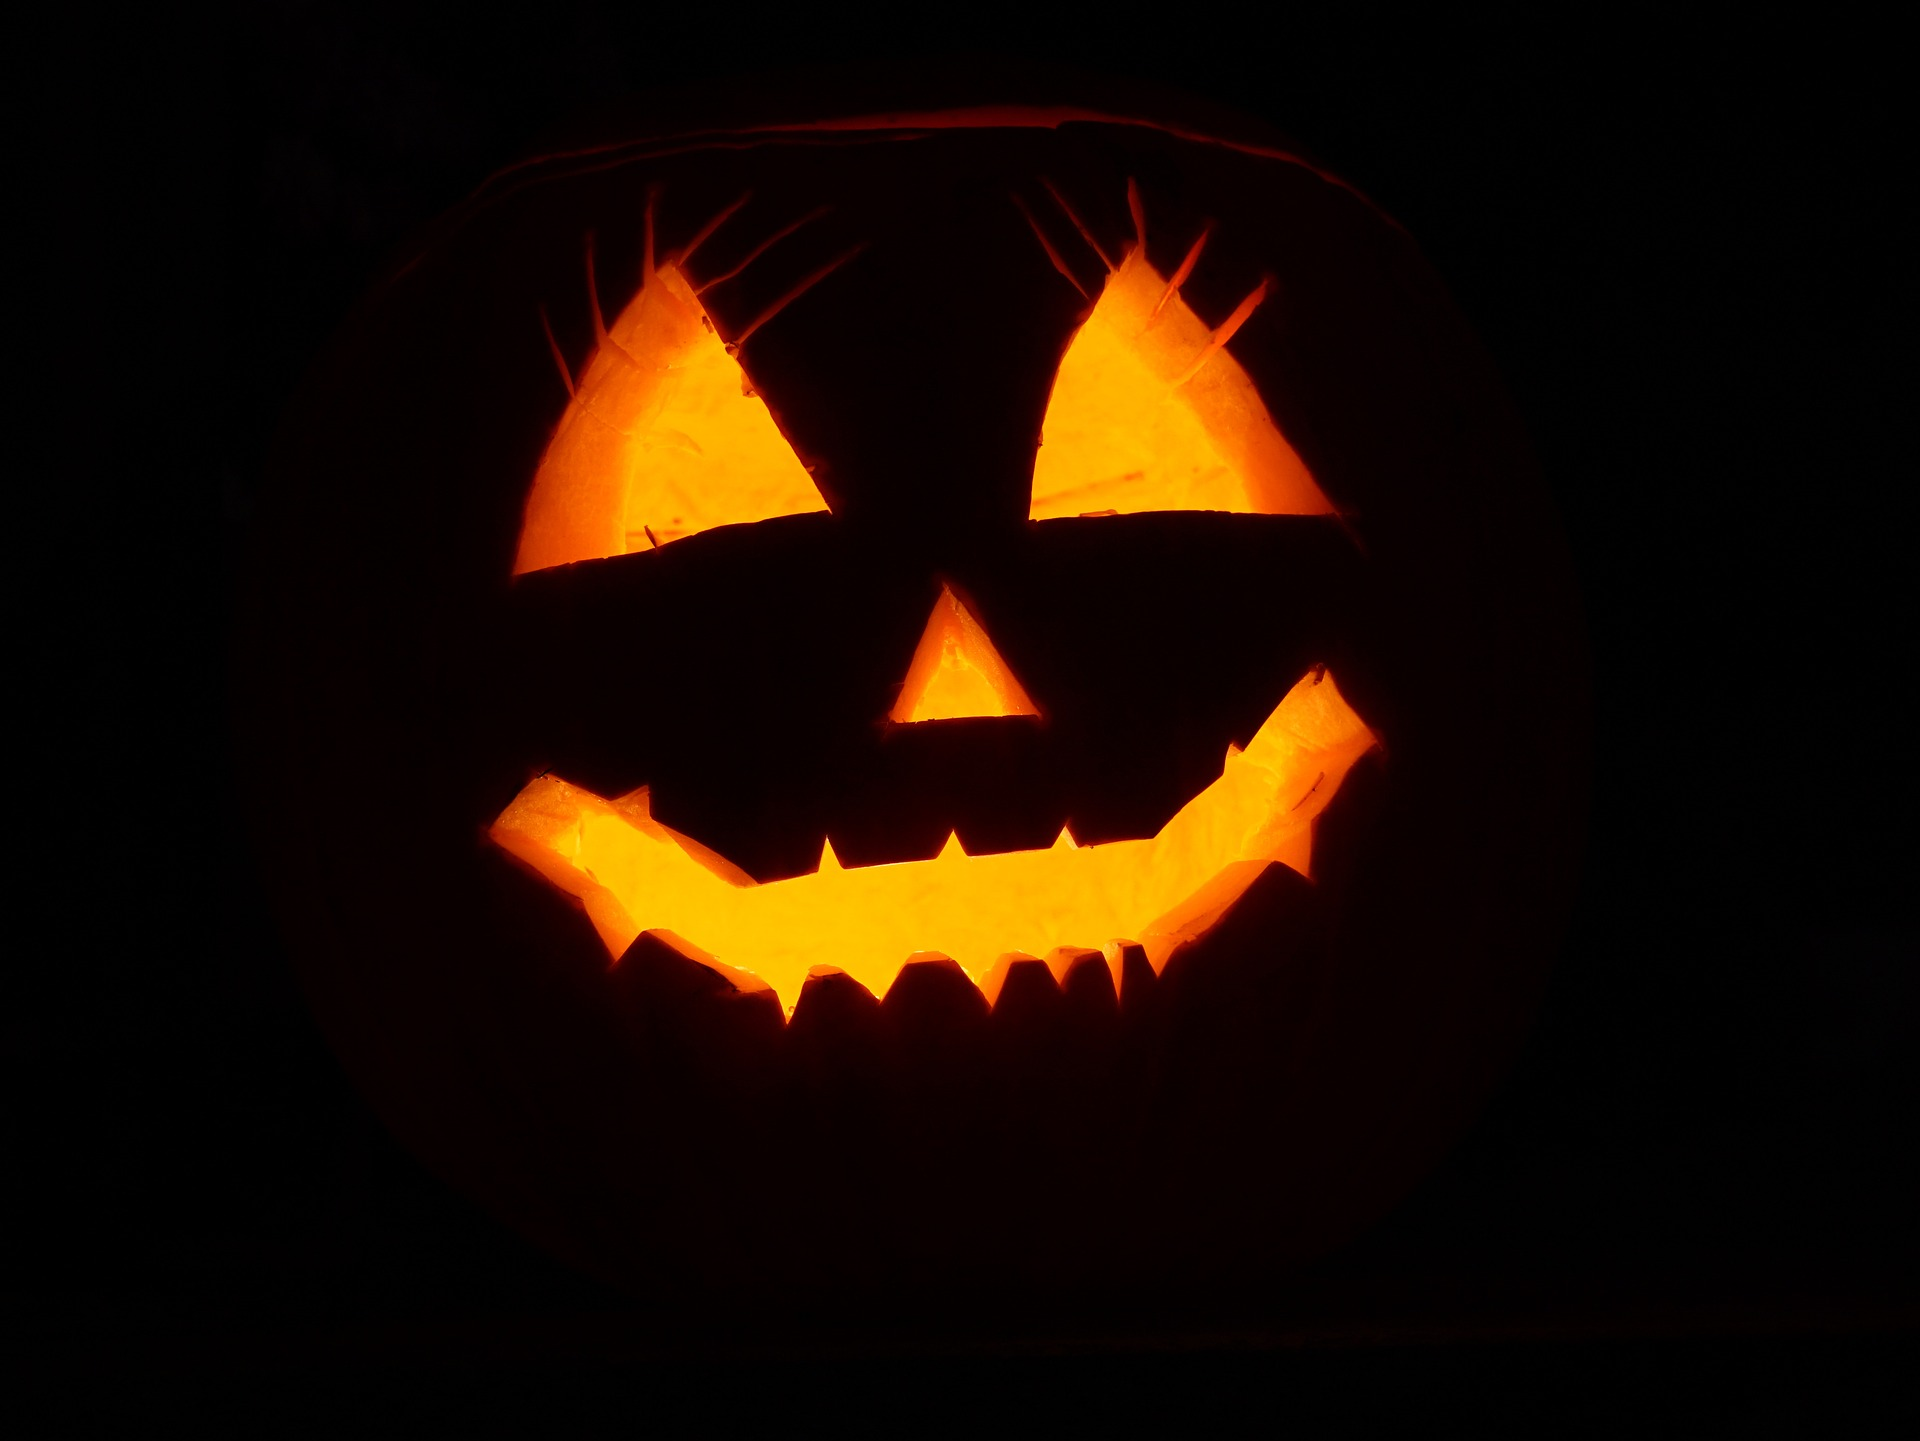 Were You Arrested on Halloween? Call Us Today to Speak to a St. Paul Criminal Defense Lawyer